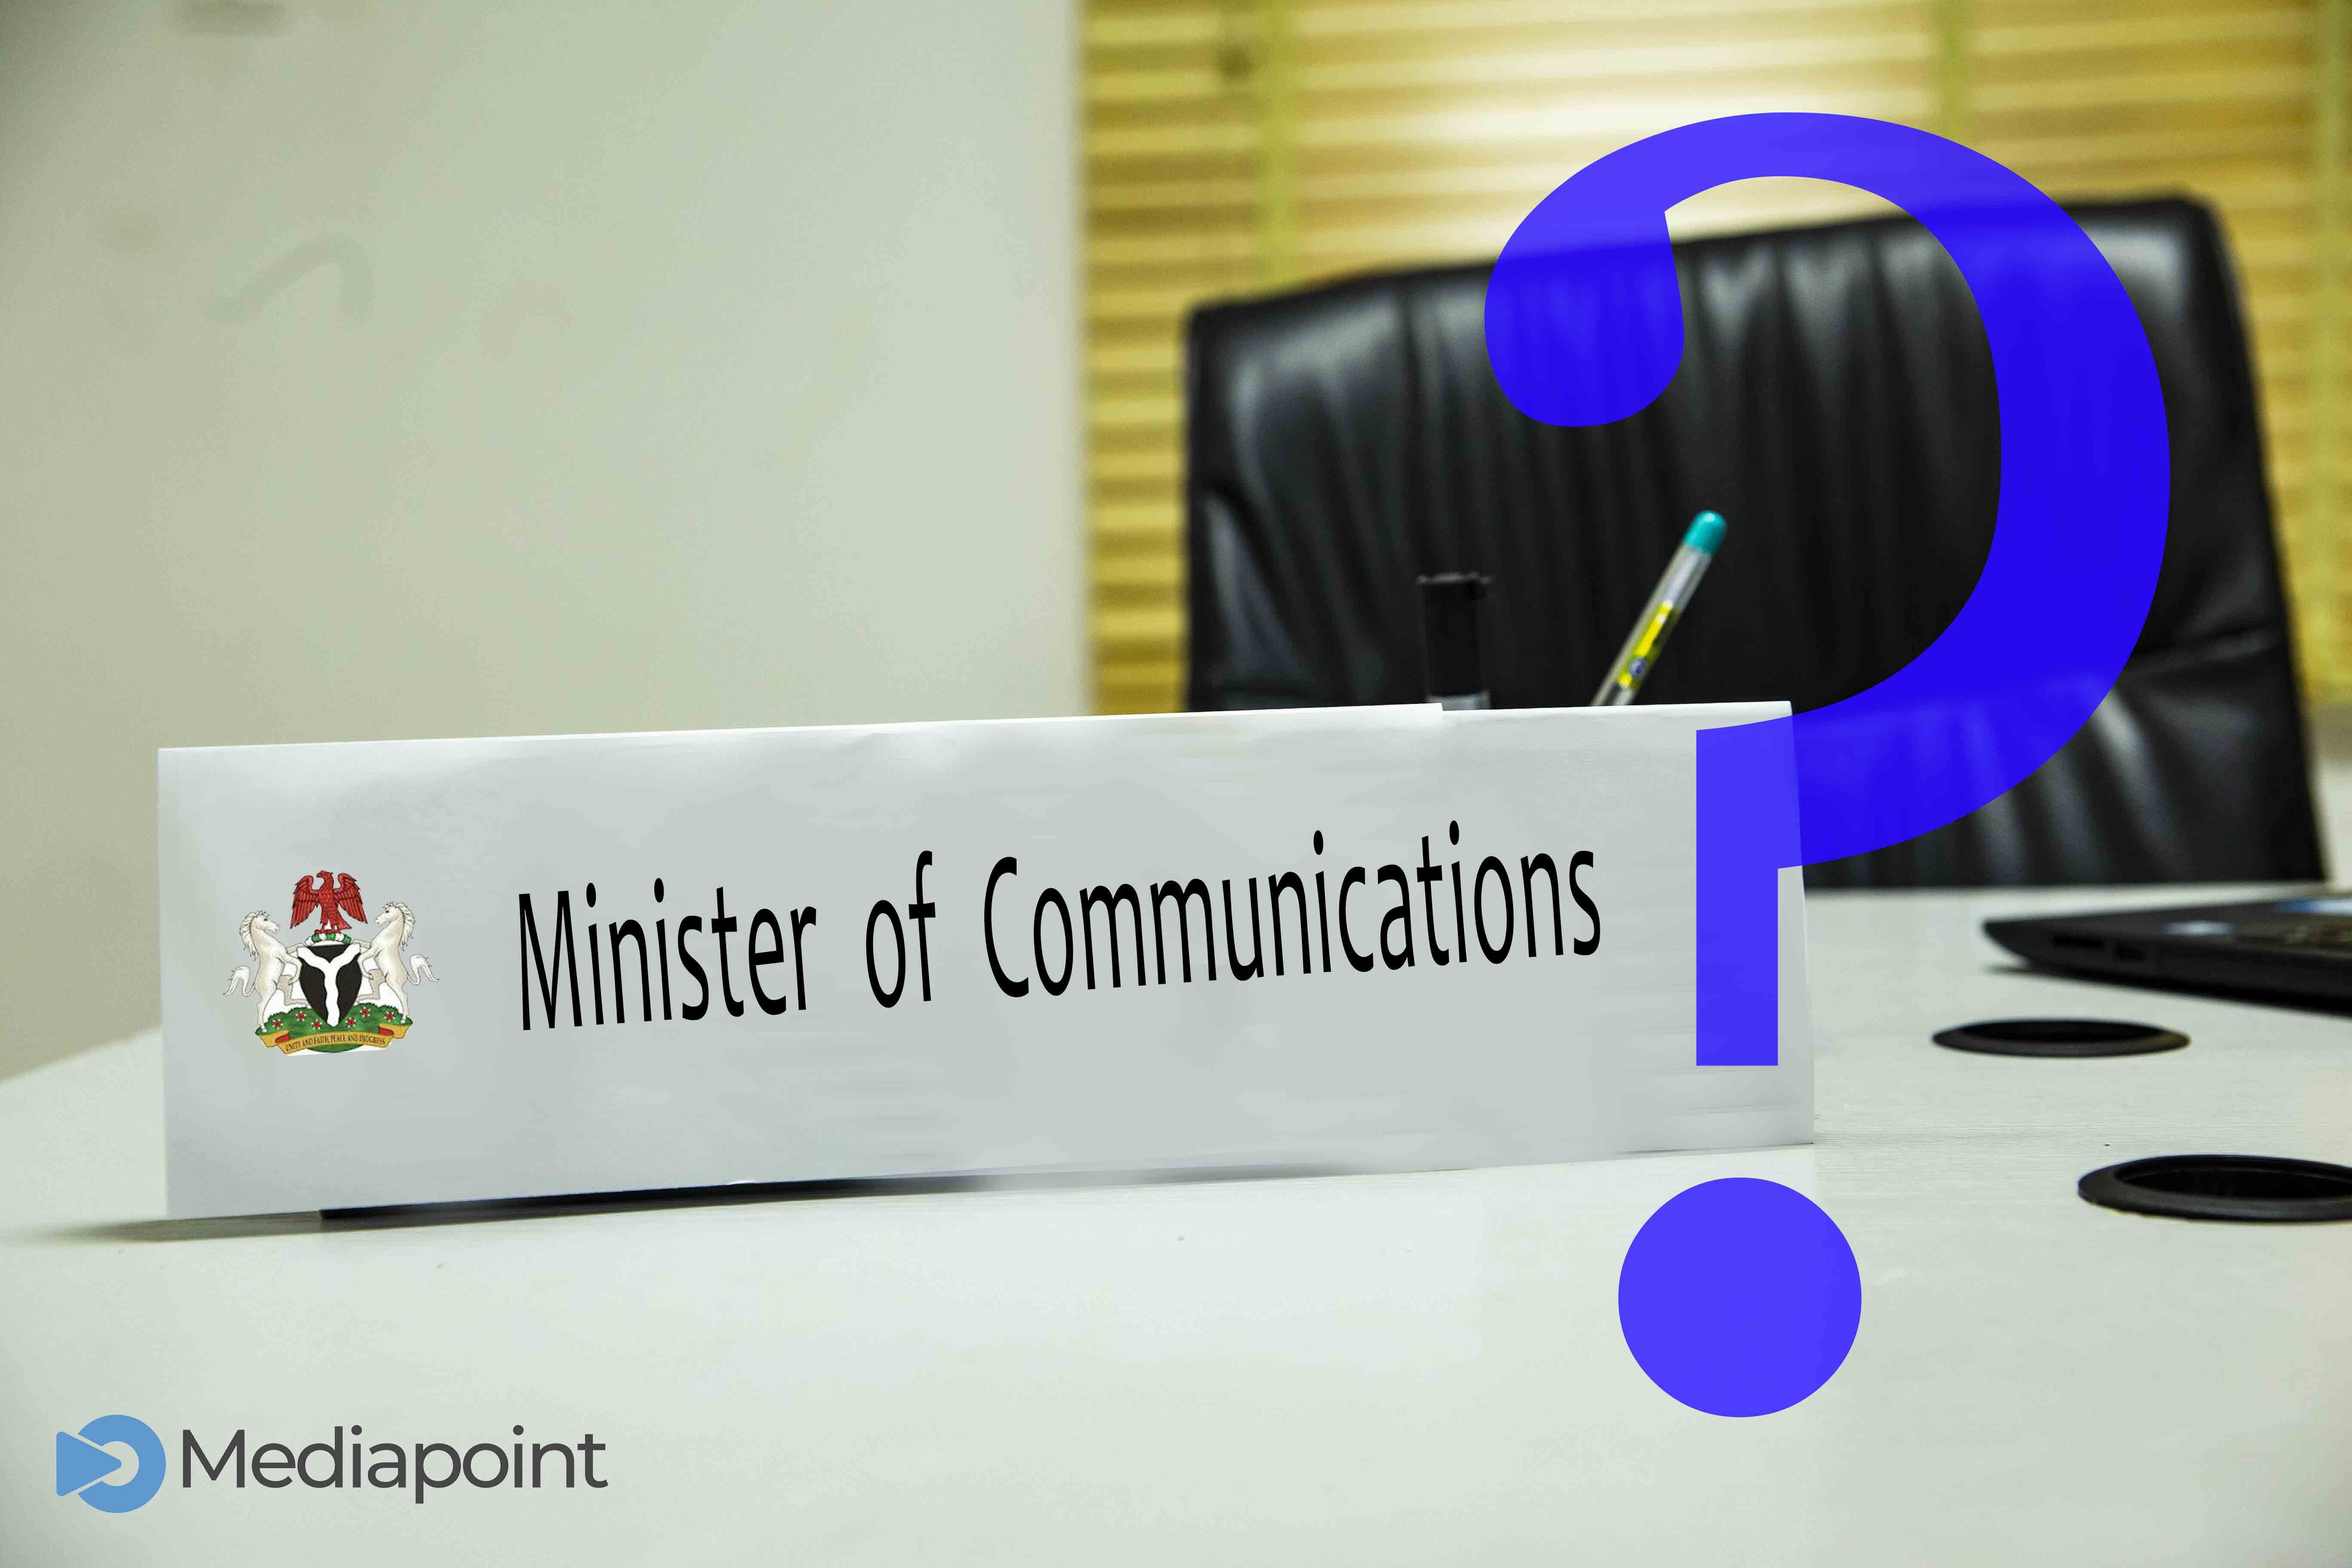 4 people most likely to become Nigerias next Communications Minister 5472x3648